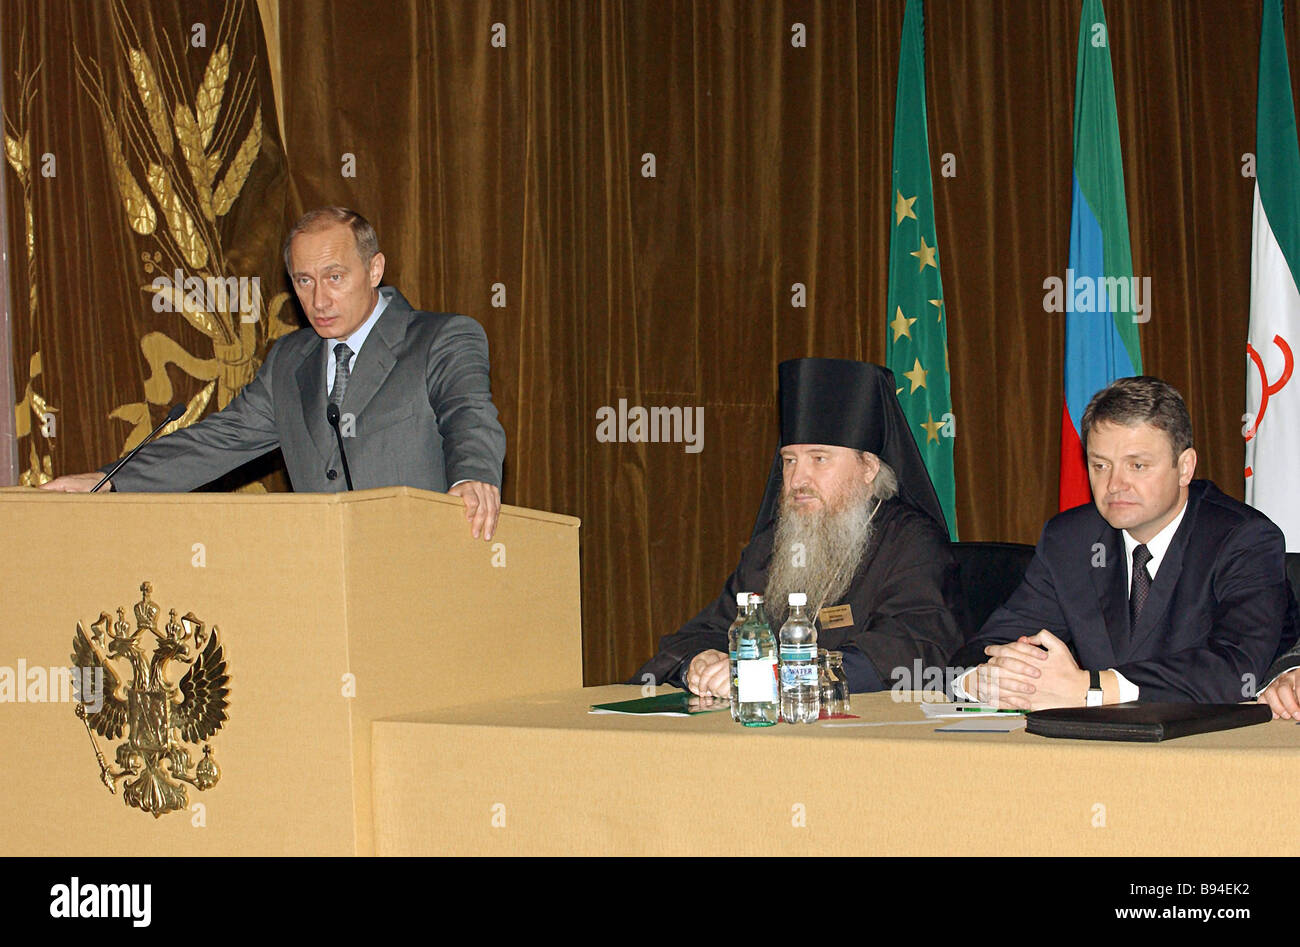 Russian President Vladimir Putin on the rostrum Theophanes the Bishop of Stavropol and Vladikavkaz in the center - Stock Image